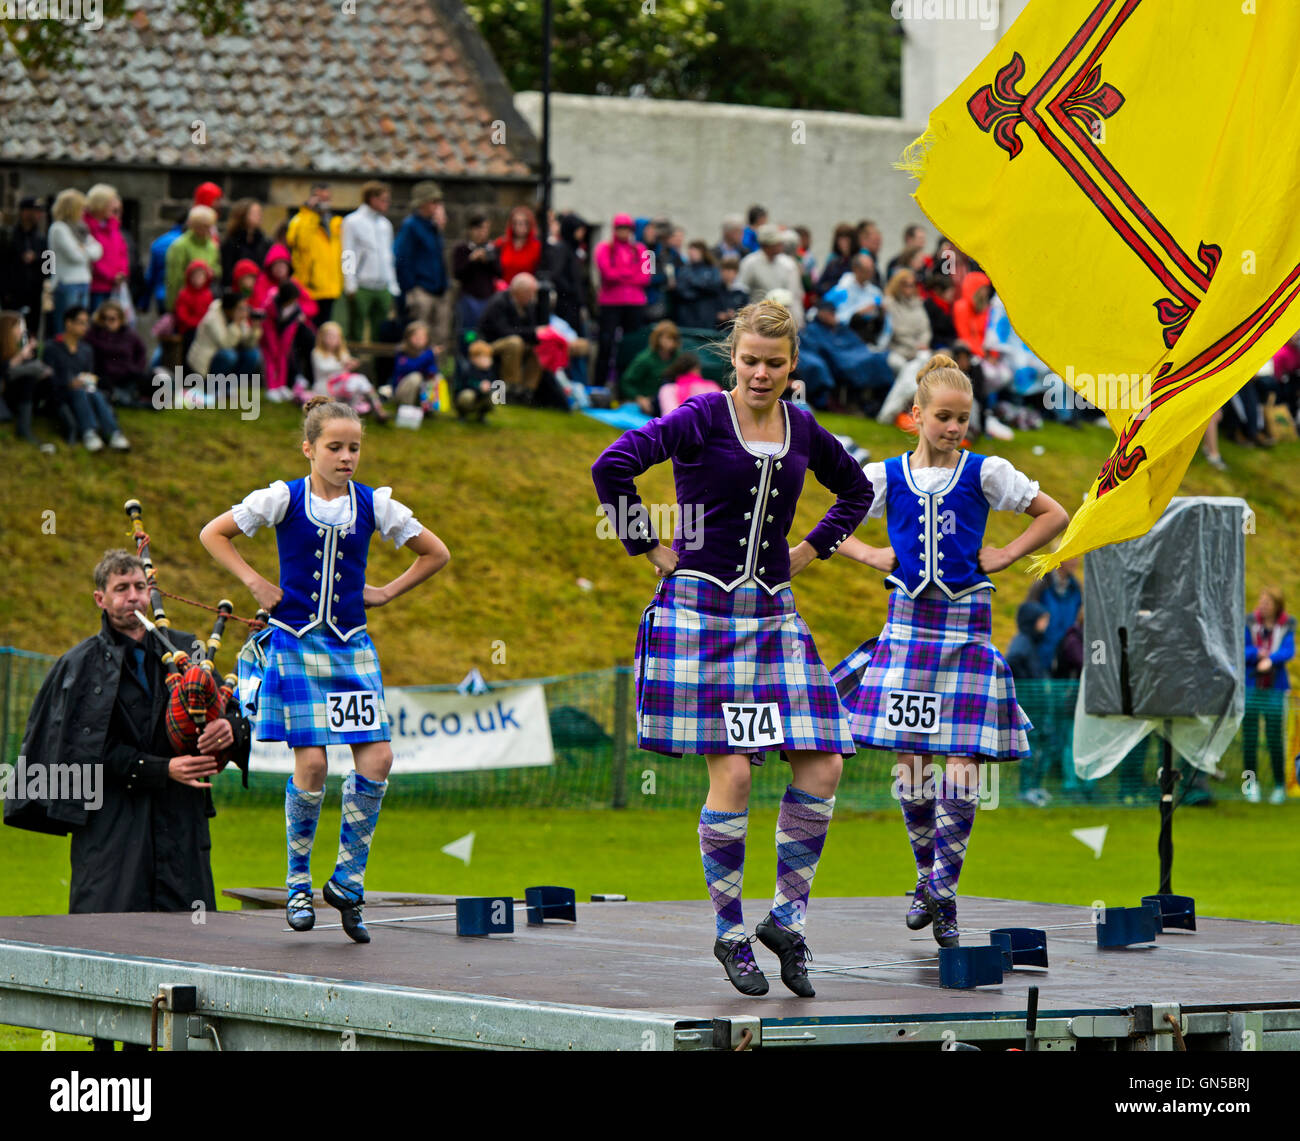 Girls in kilted skirts performing at the Highland Dancing competition, Ceres Highland Games, Ceres, Scotland, United - Stock Image